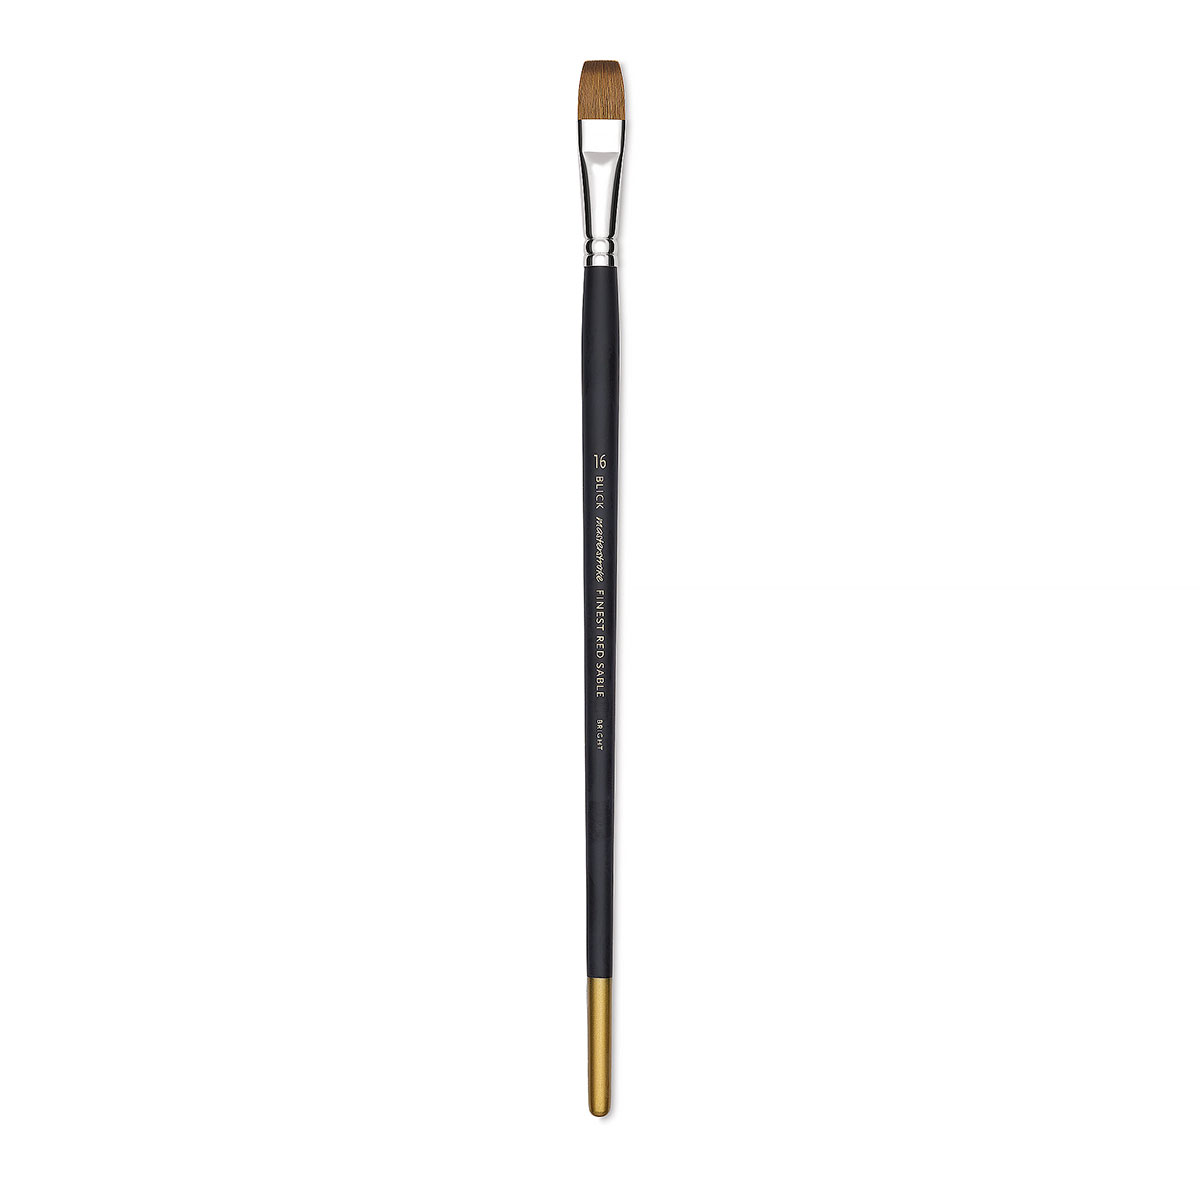 Blick Masterstroke Finest Red Sable Brush - Bright, Size 16, Long Handle